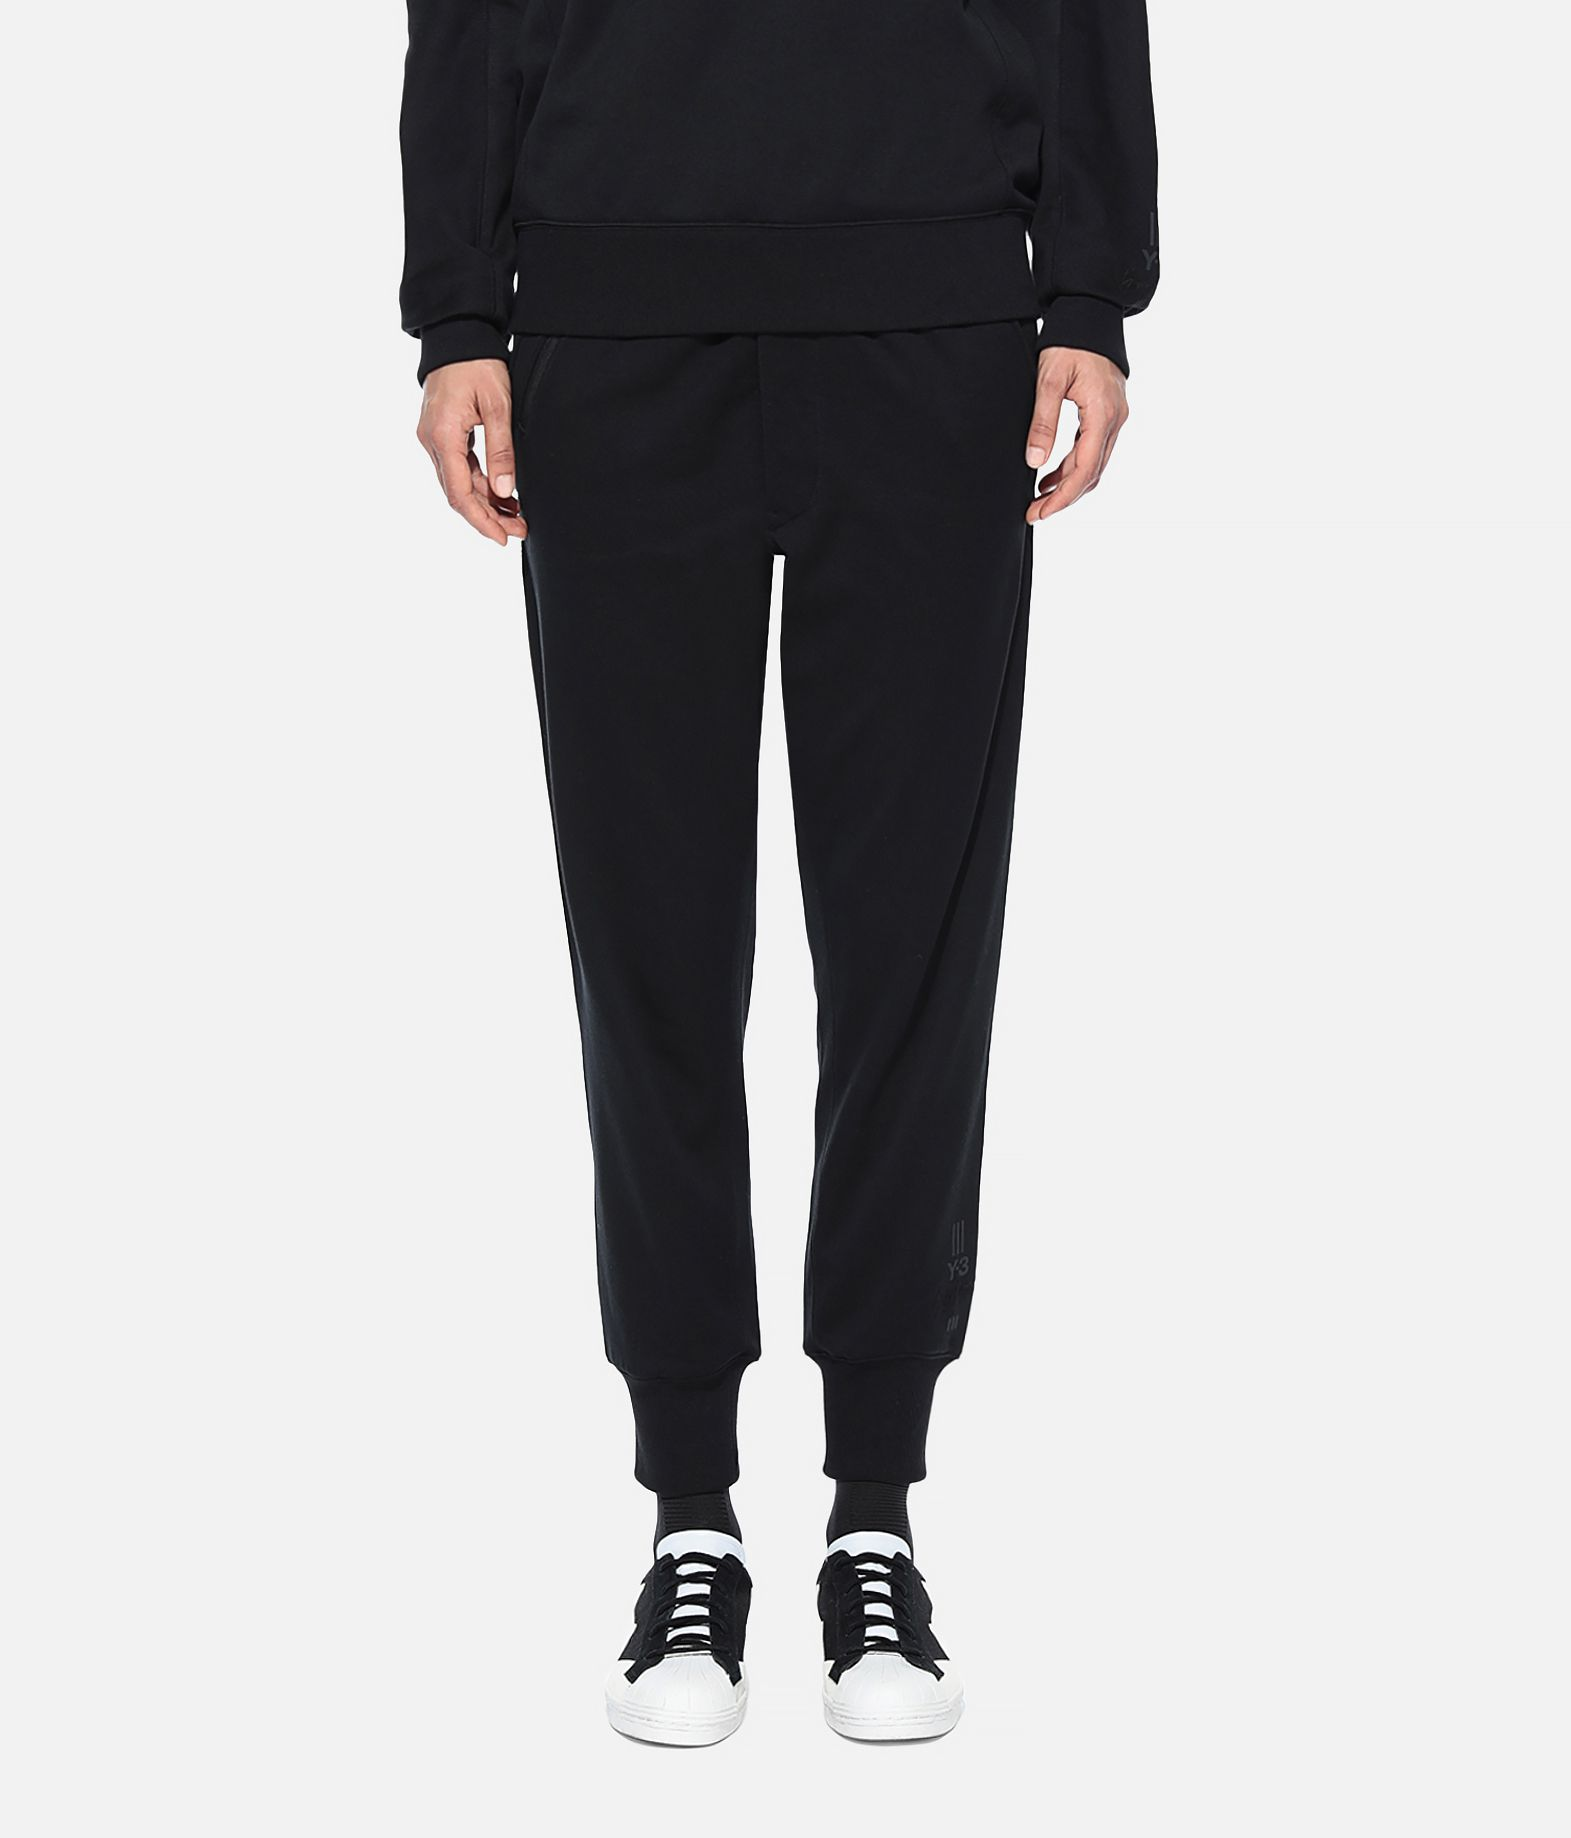 Y-3 Y-3 Classic Cuffed Pants Sweatpants Woman r